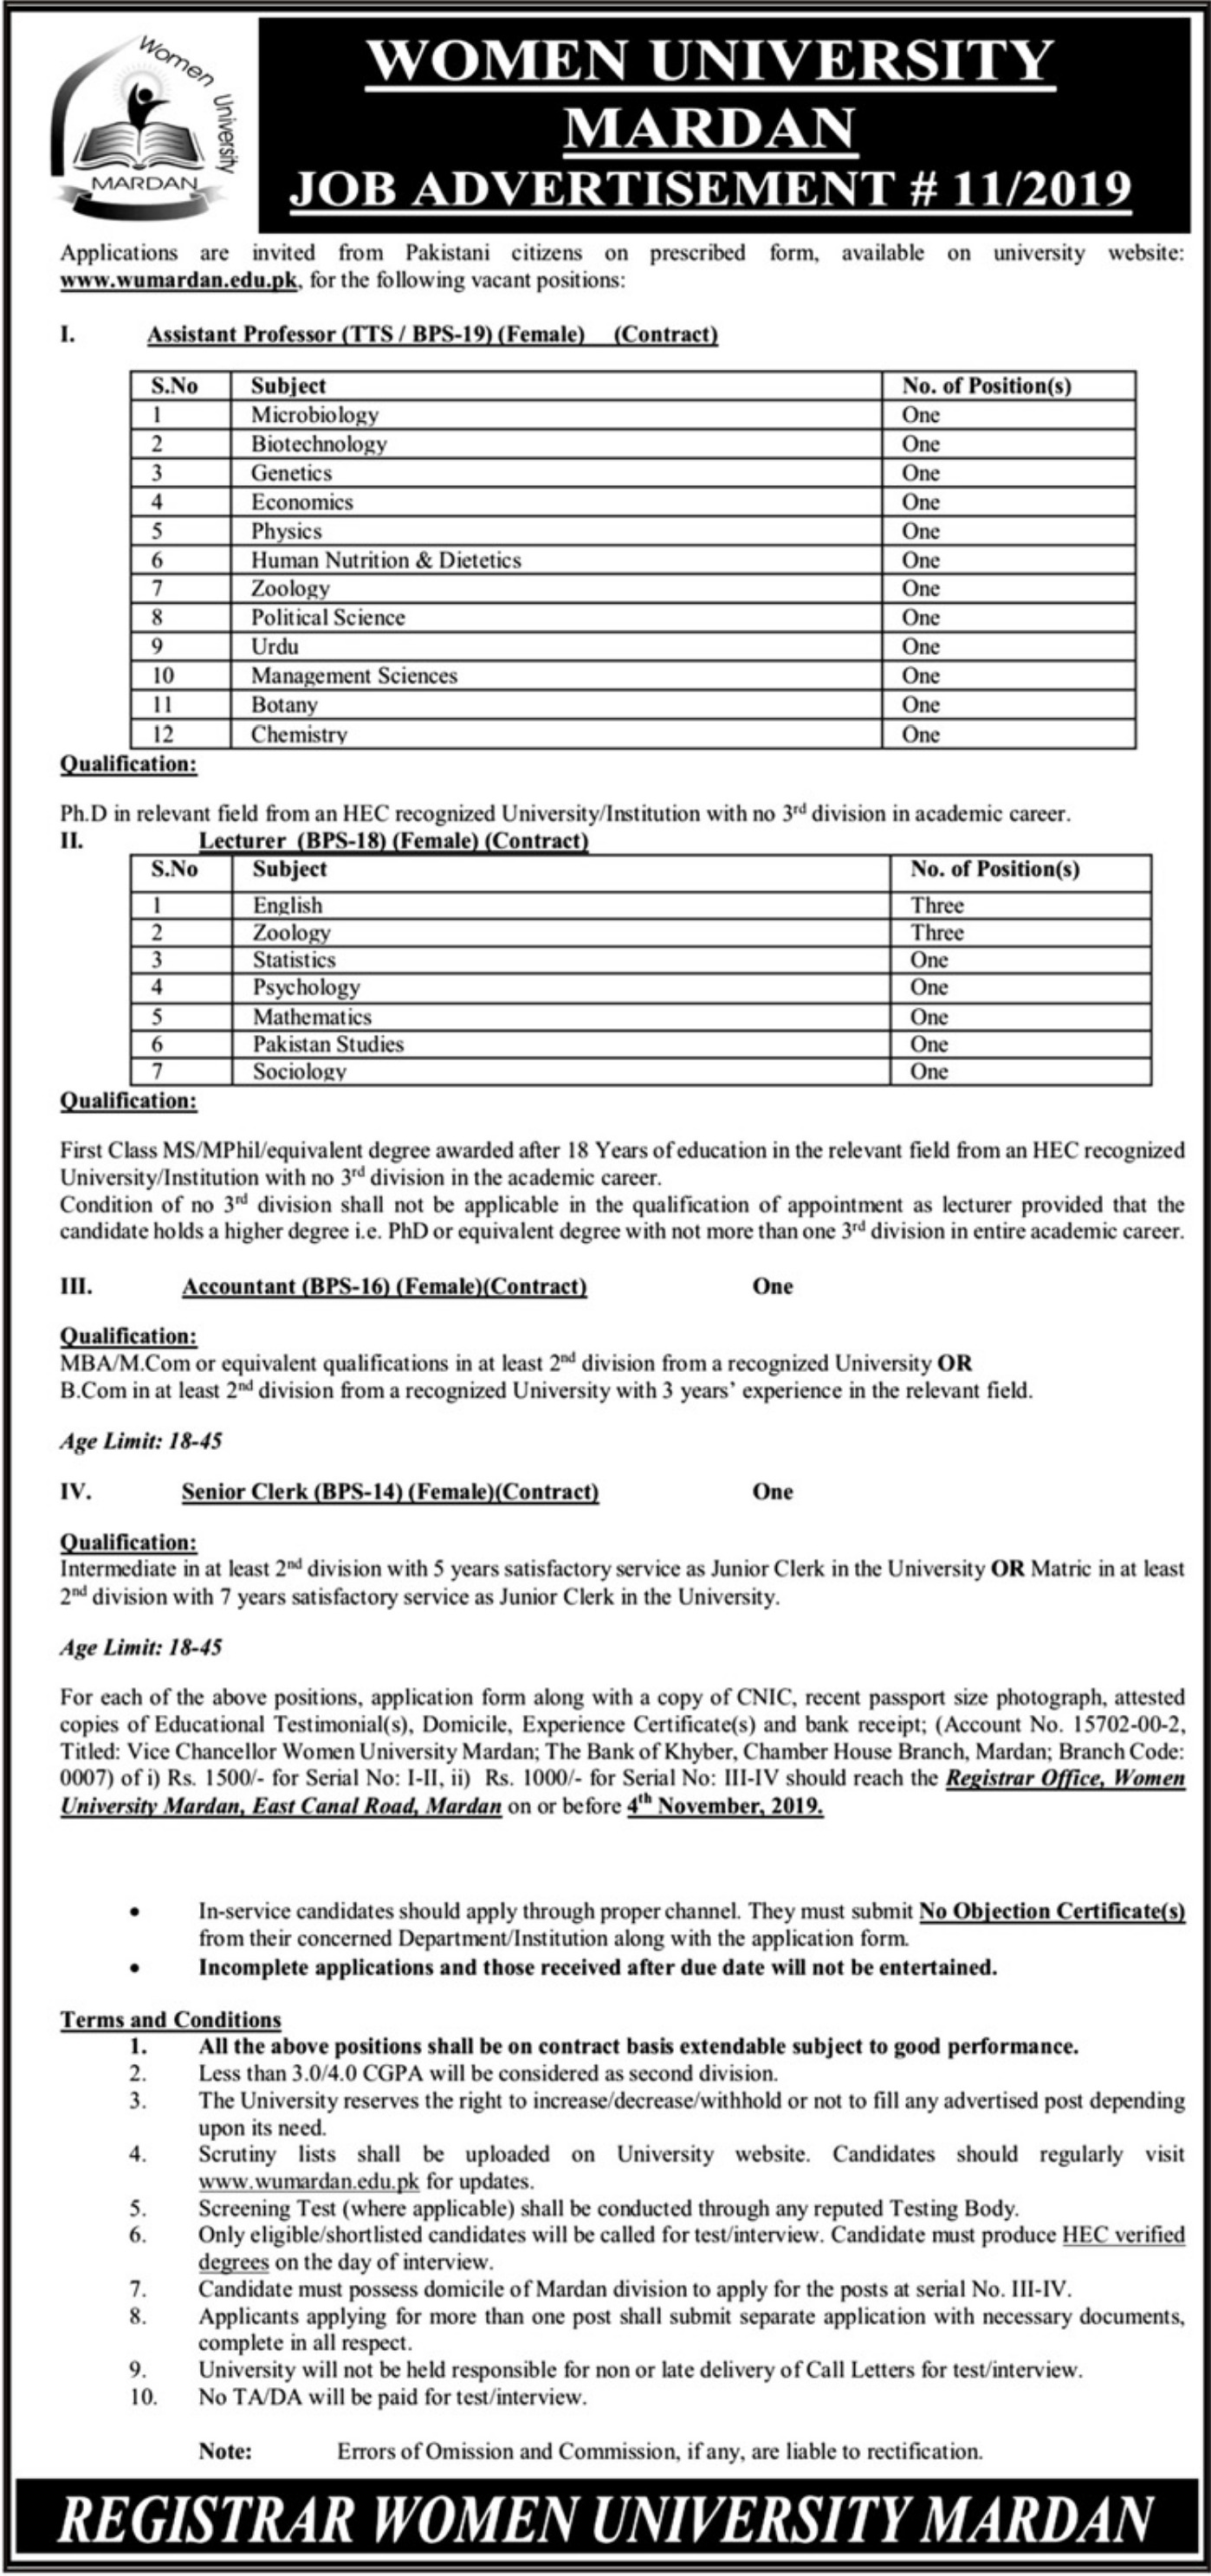 Women University Mardan Jobs 2019 KPK